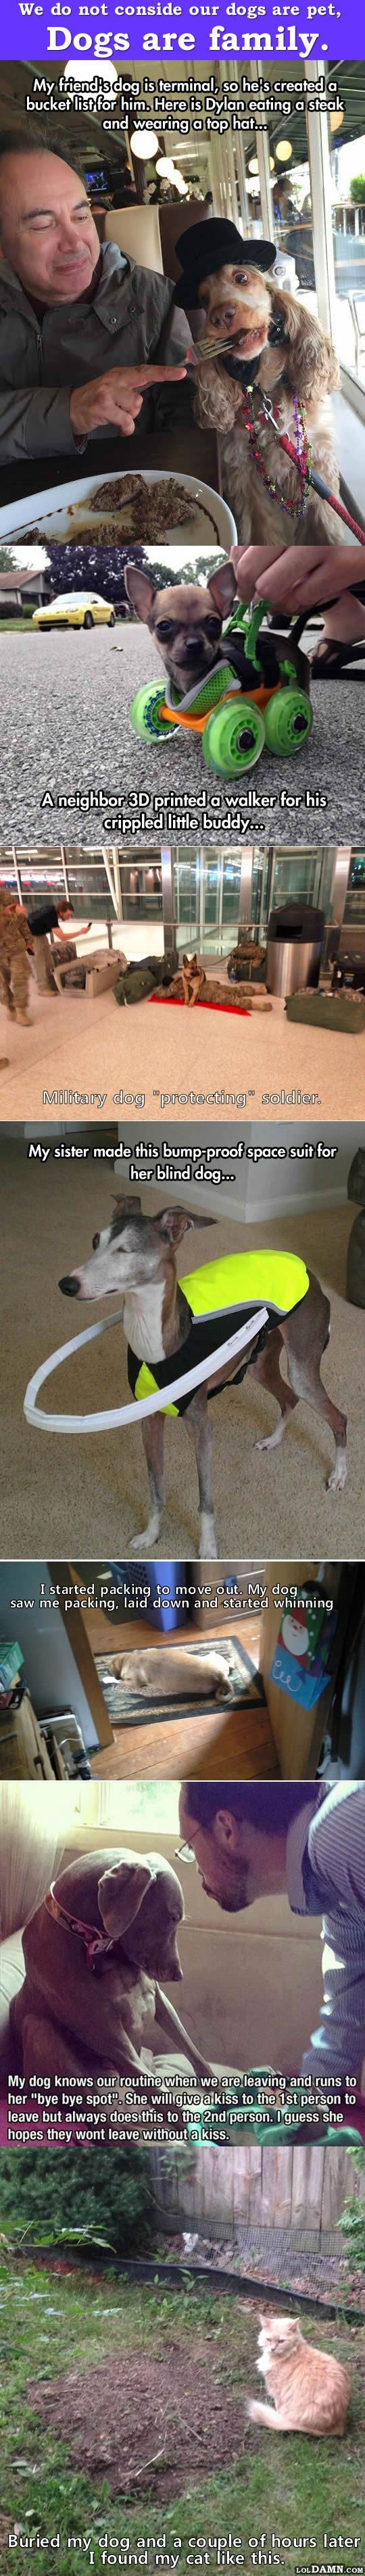 dogs are family.   animals   pinterest   pet dogs, dog and animal